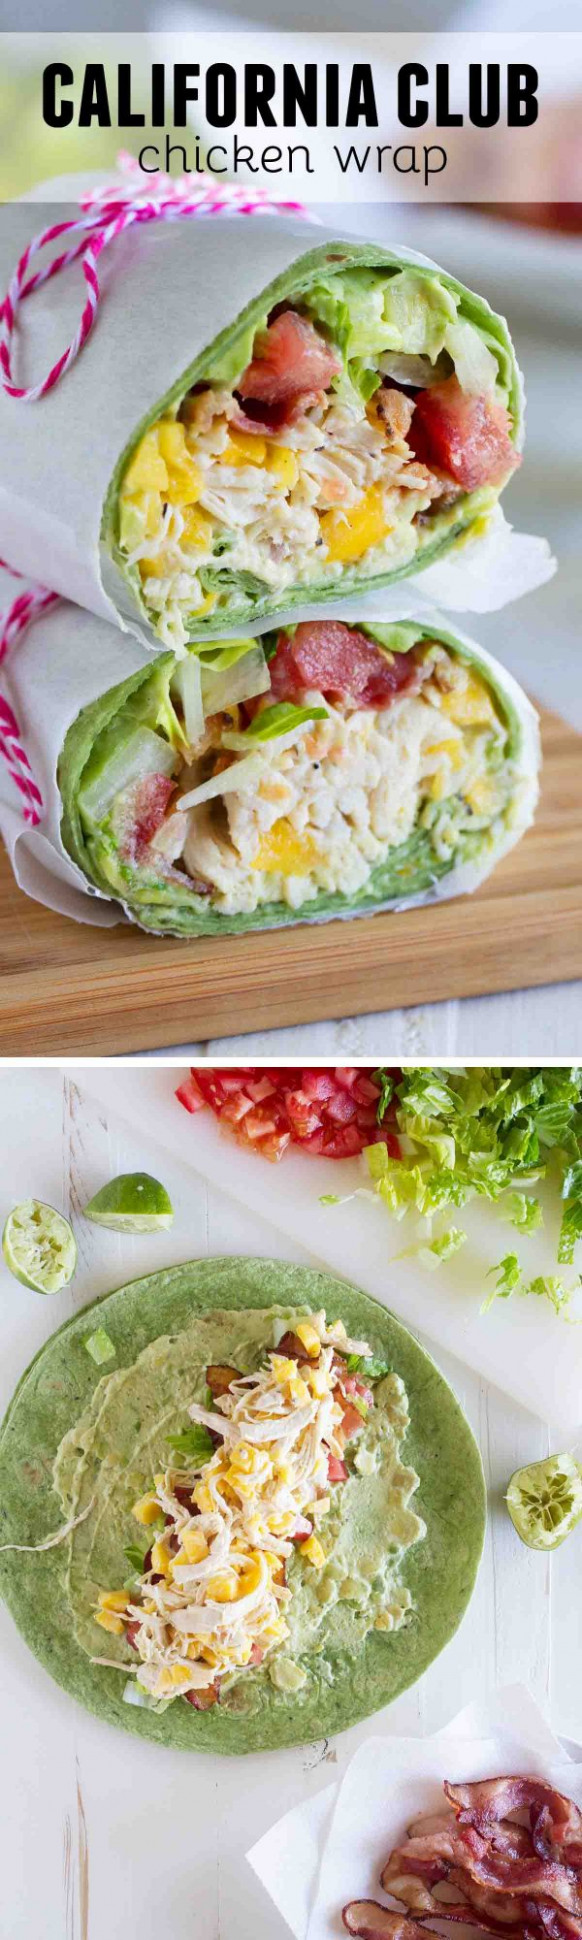 California Club Chicken Wrap - Taste and Tell